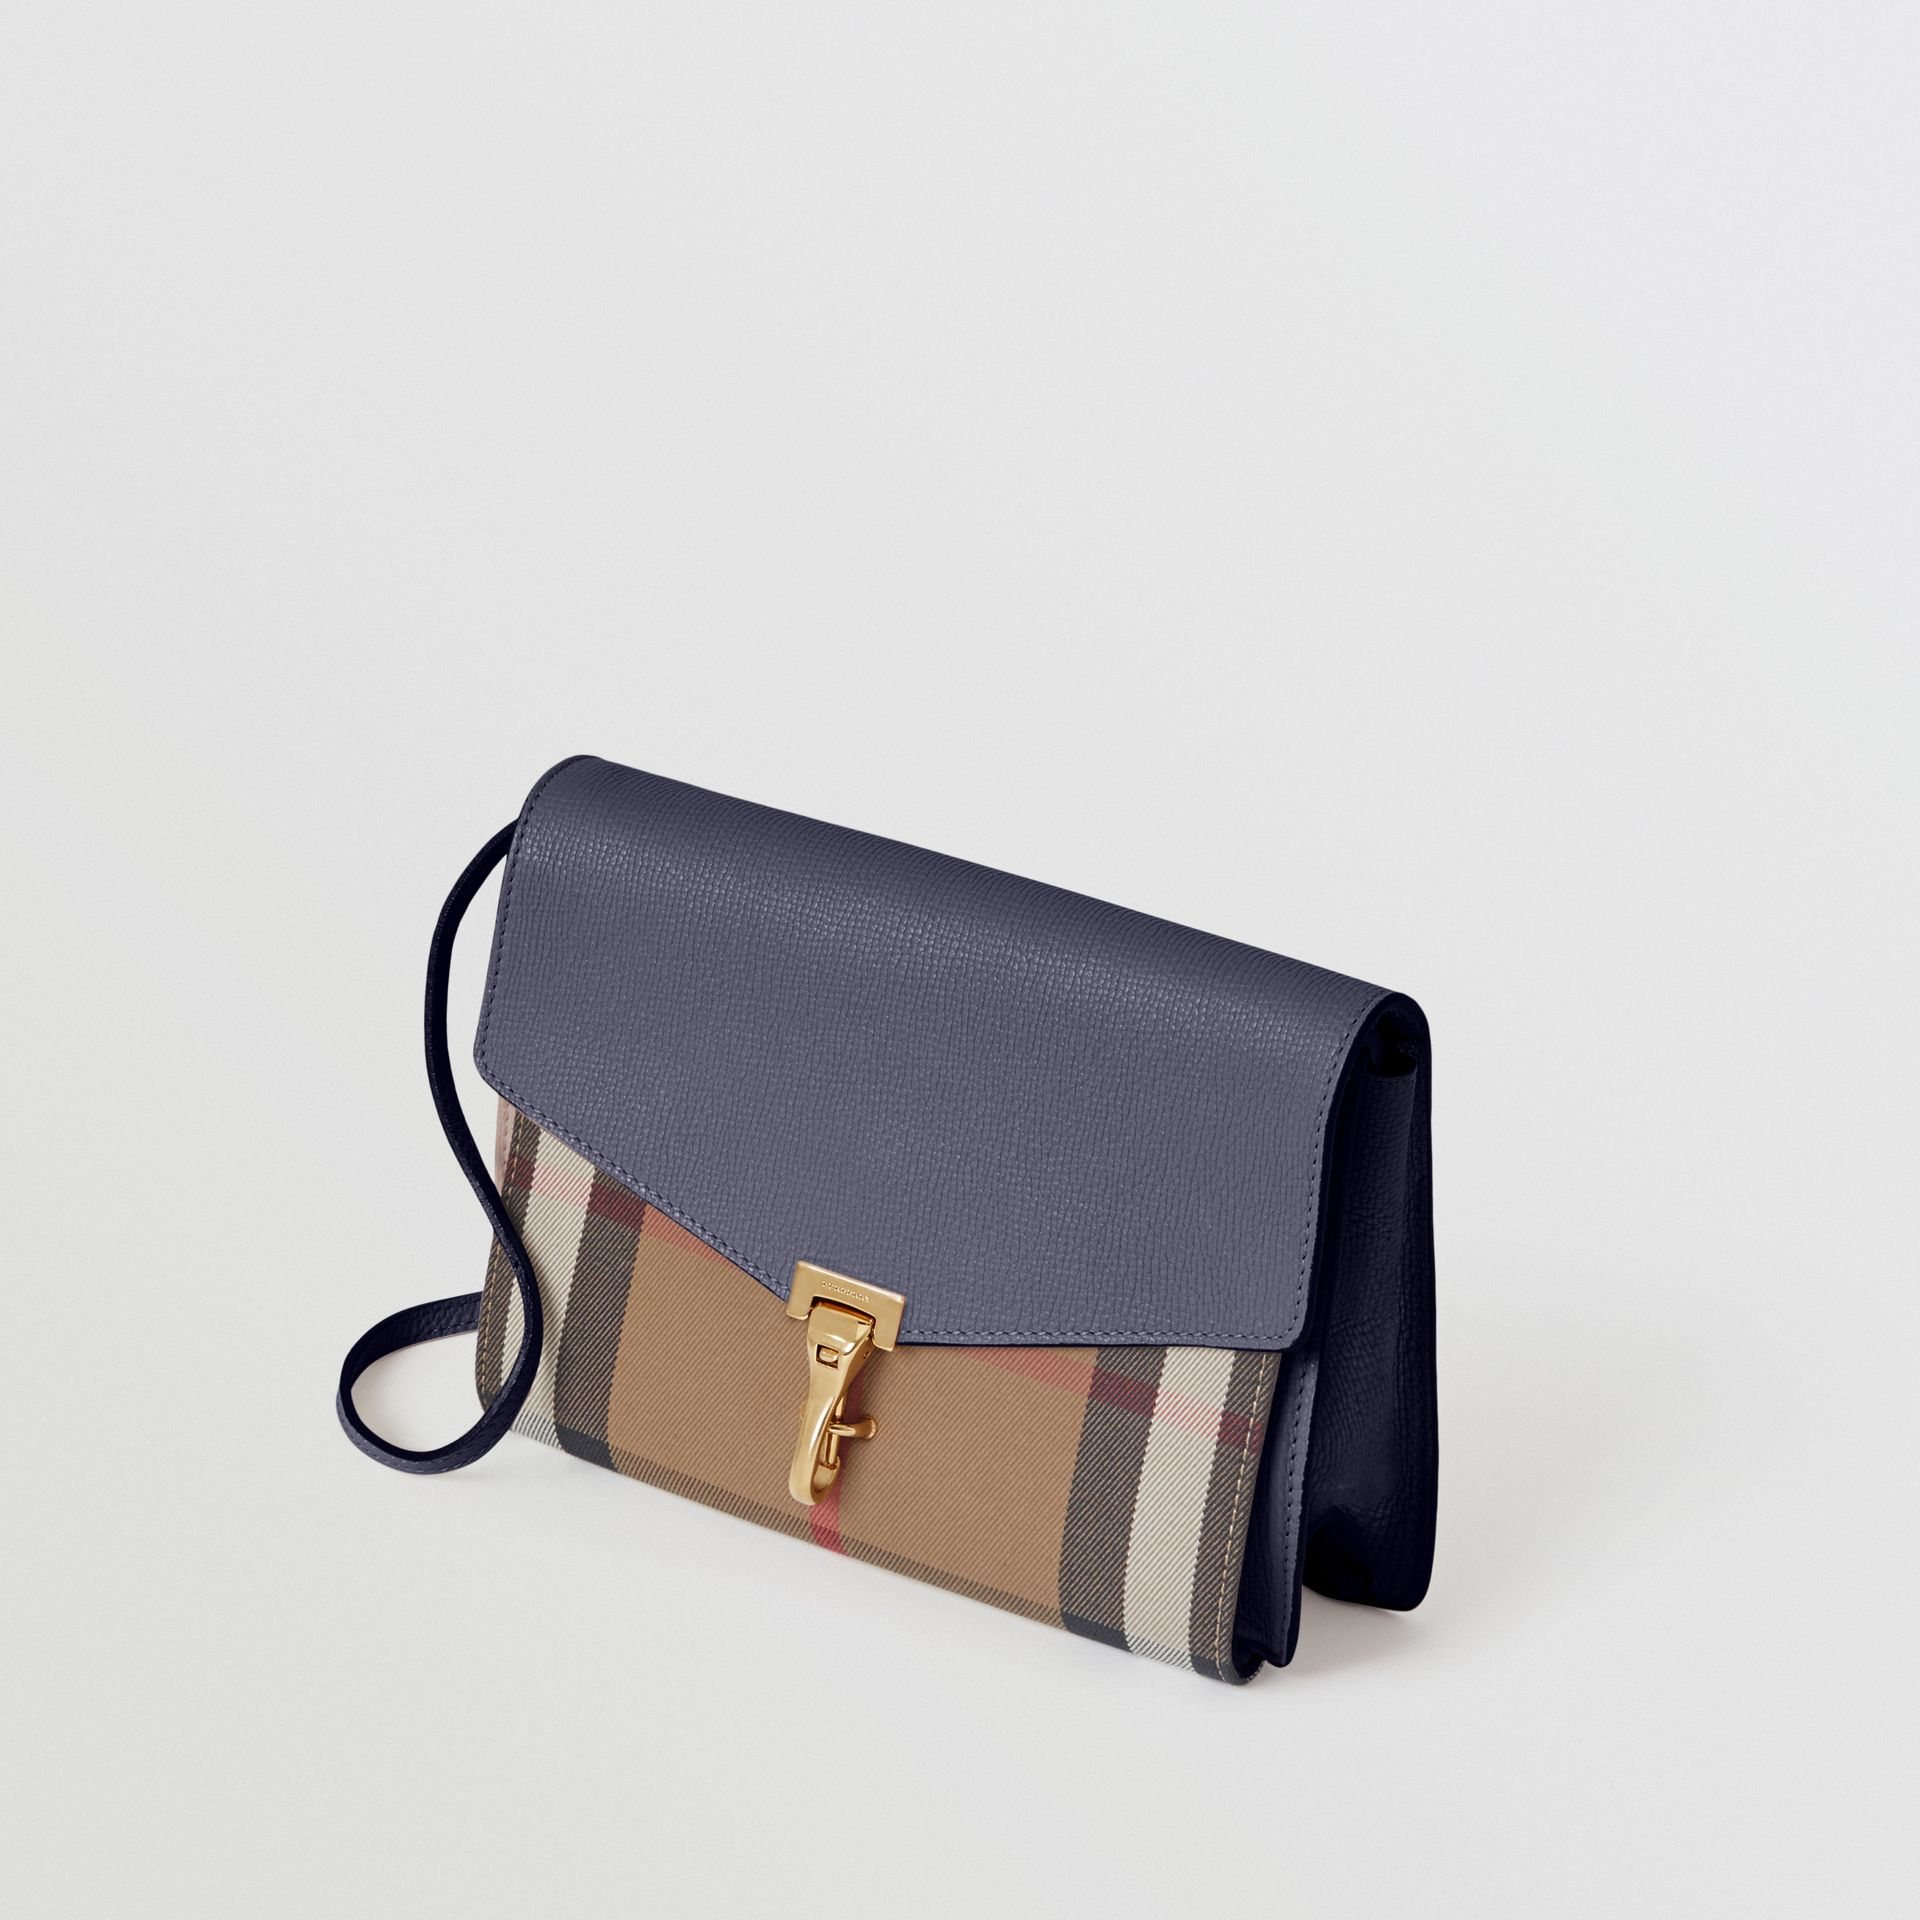 Small Leather and House Check Crossbody Bag in Ink Blue - Women | Burberry Singapore - gallery image 4